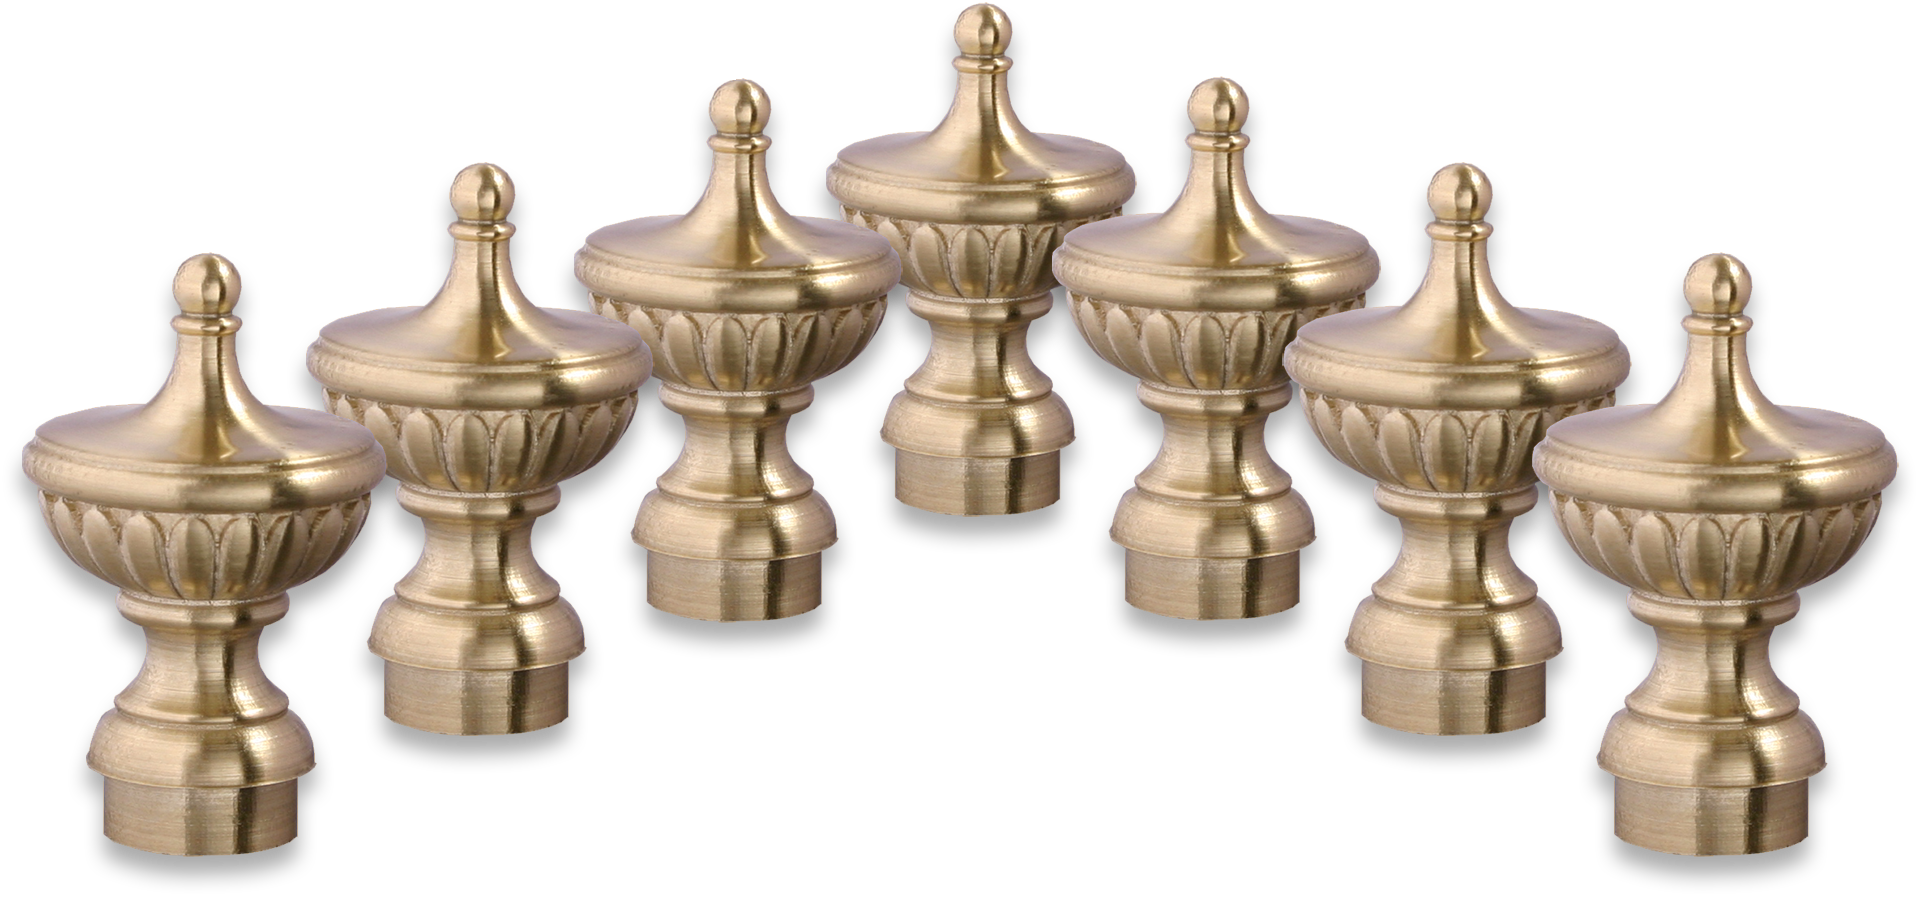 SMALL-BRASS-FINIALS